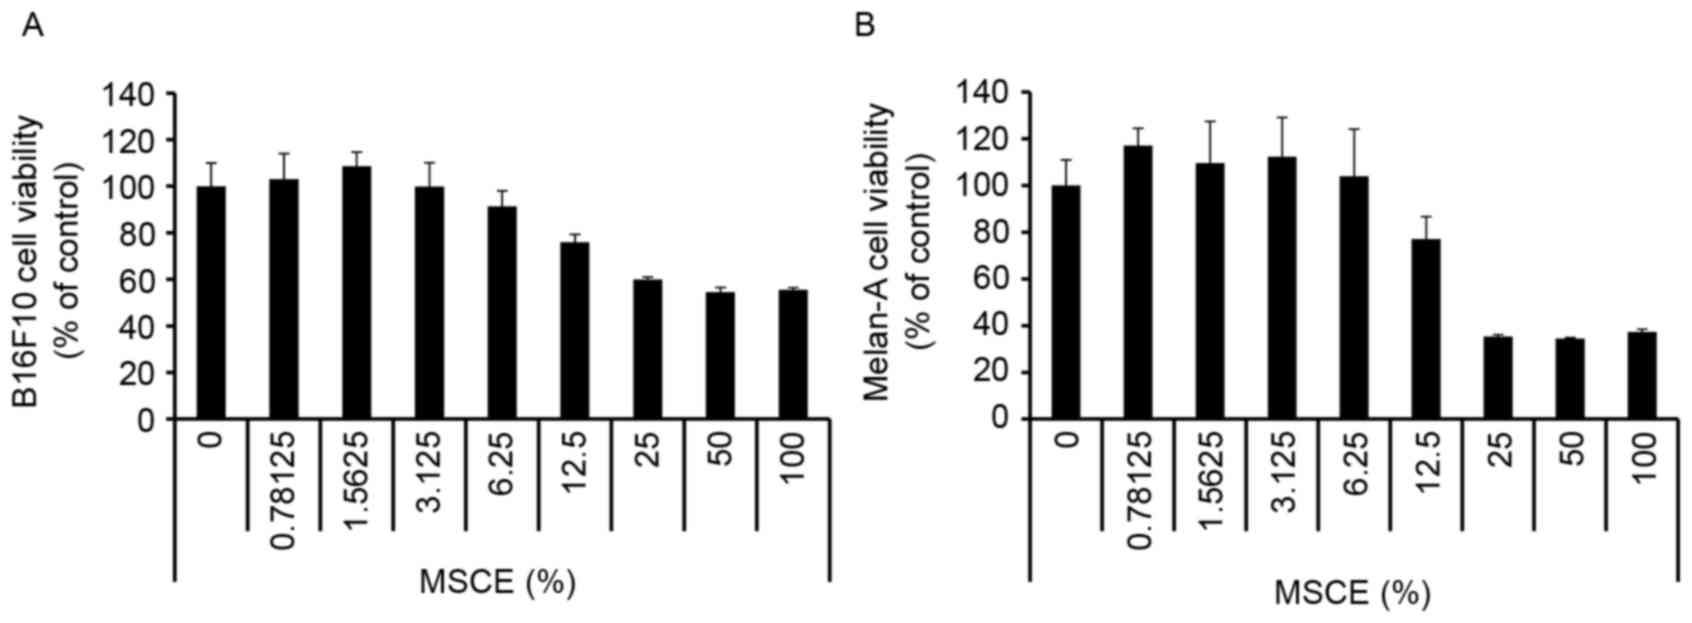 Inhibitory effects of Stichopus japonicus extract on